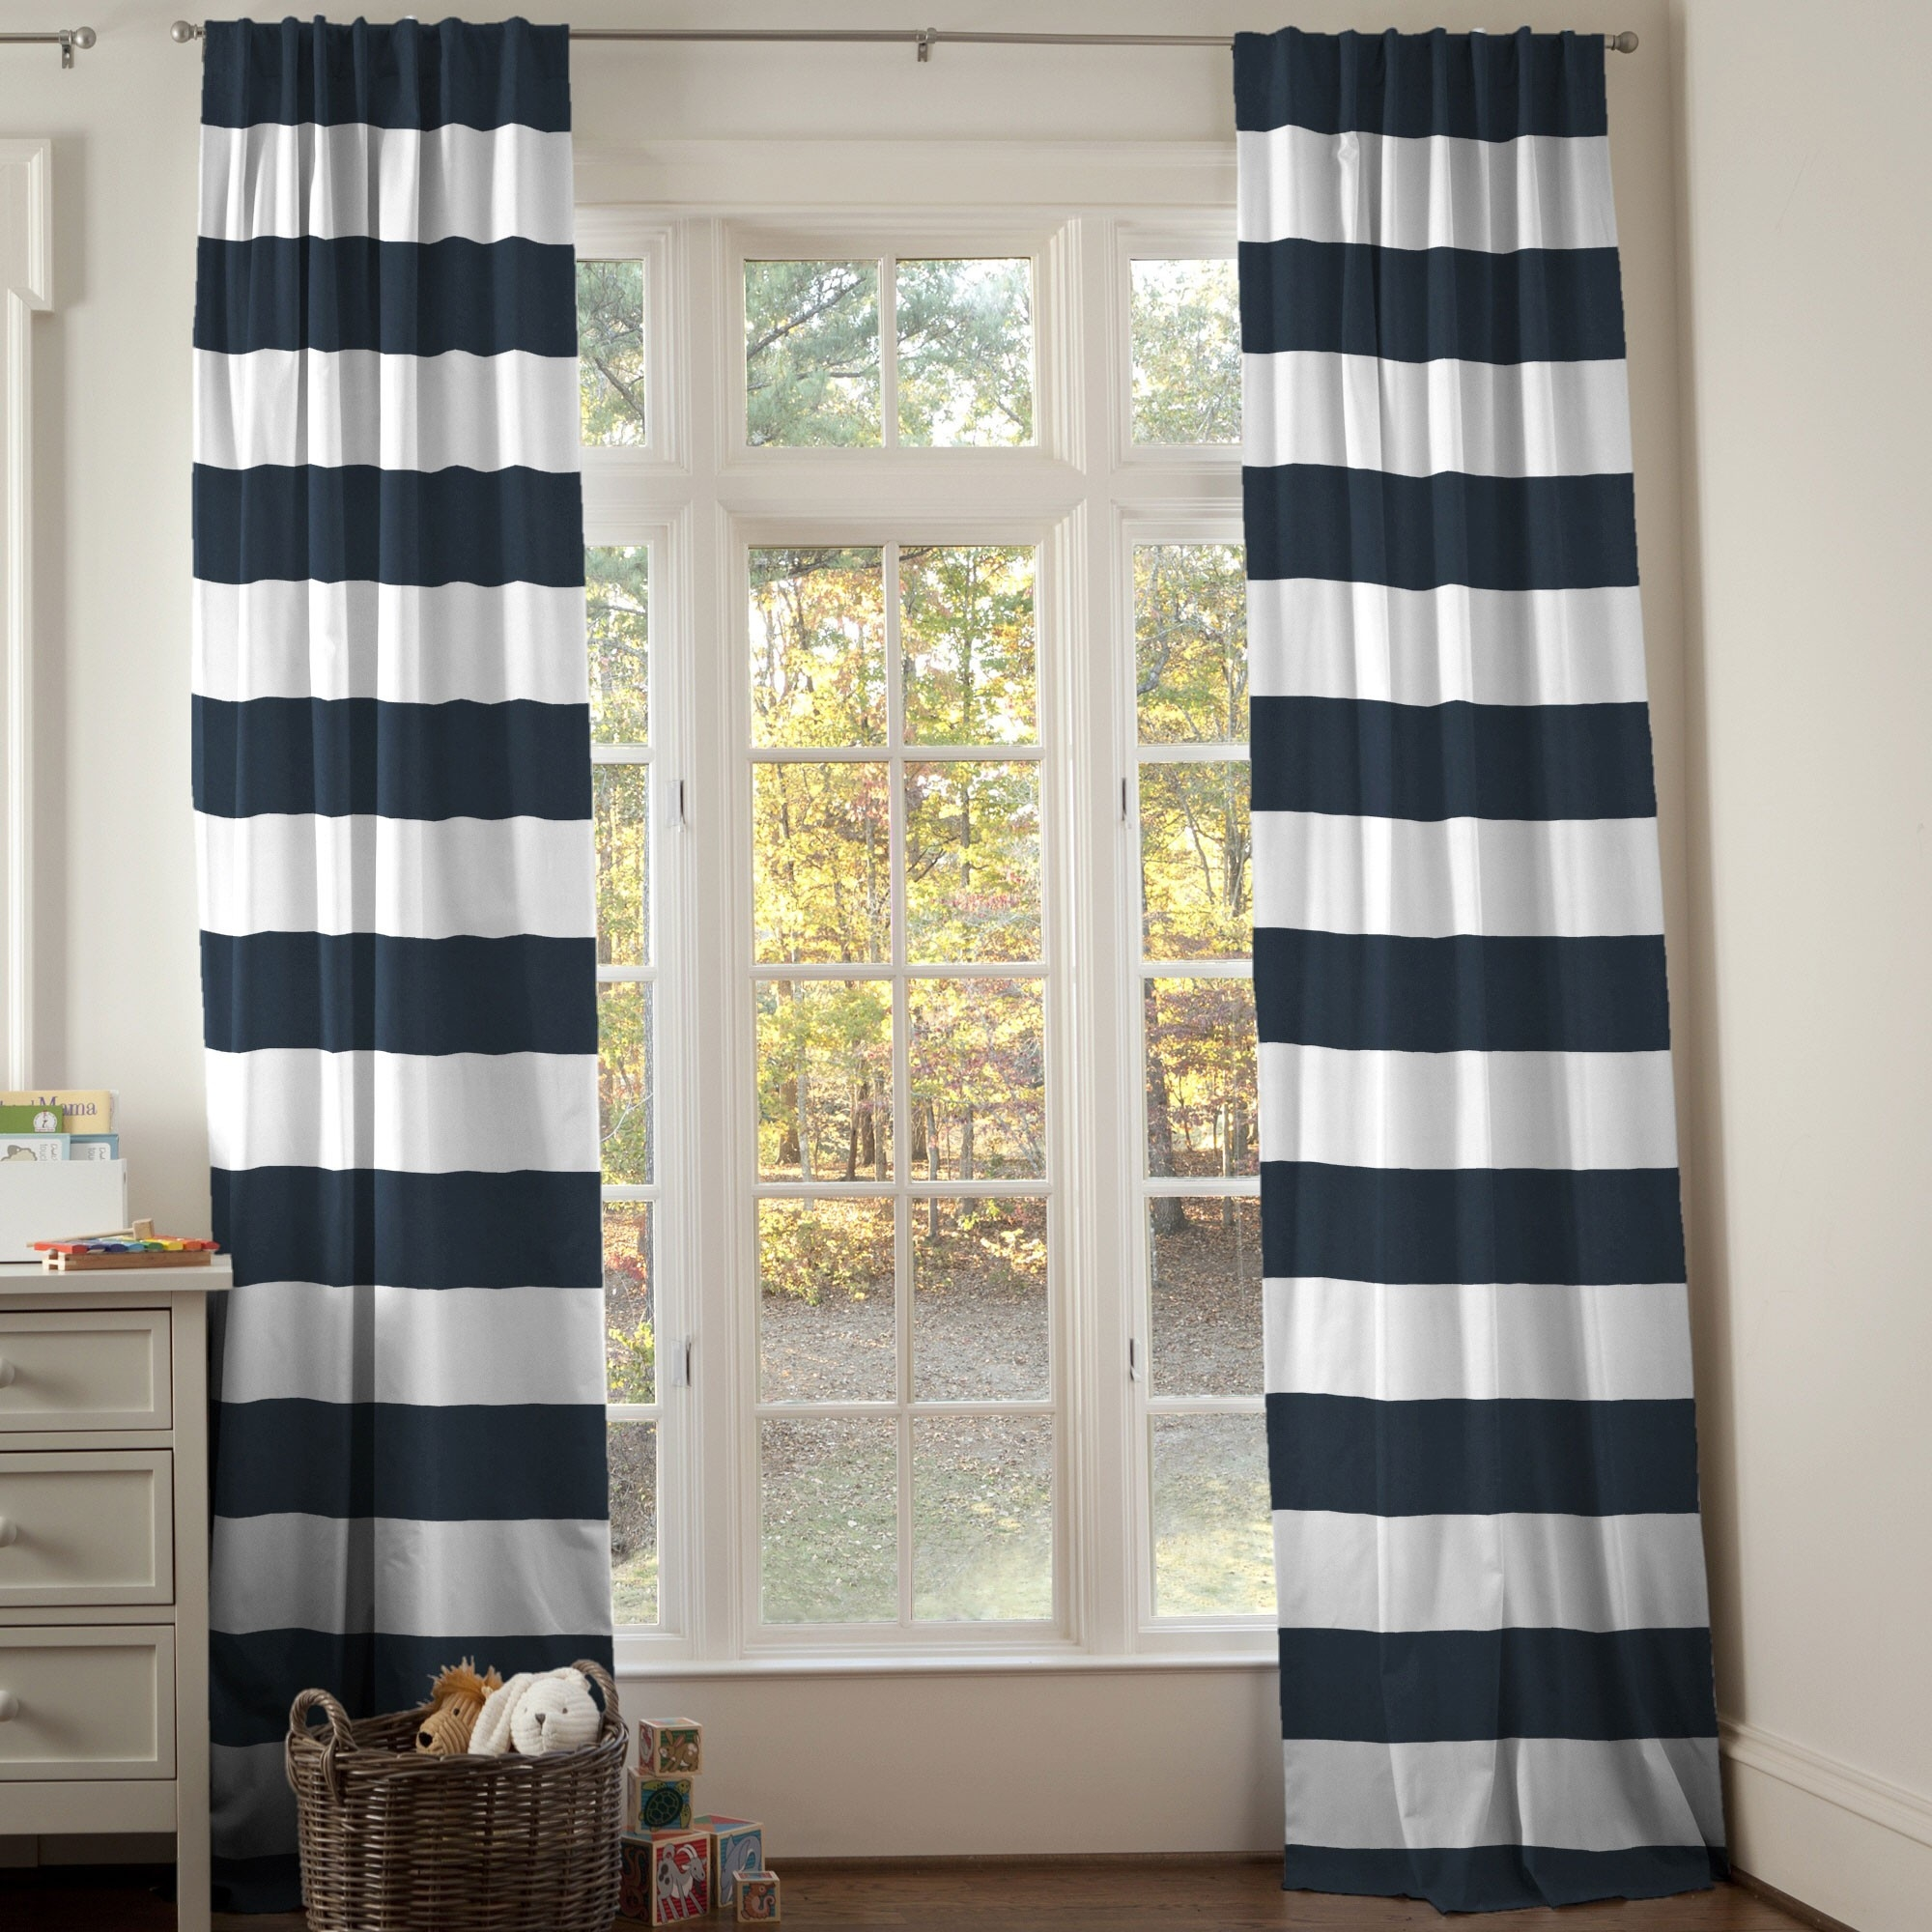 Best Ideas About Horizontal Striped Curtains On Pinterestation With Regard To Striped Door Curtain (Image 3 of 15)